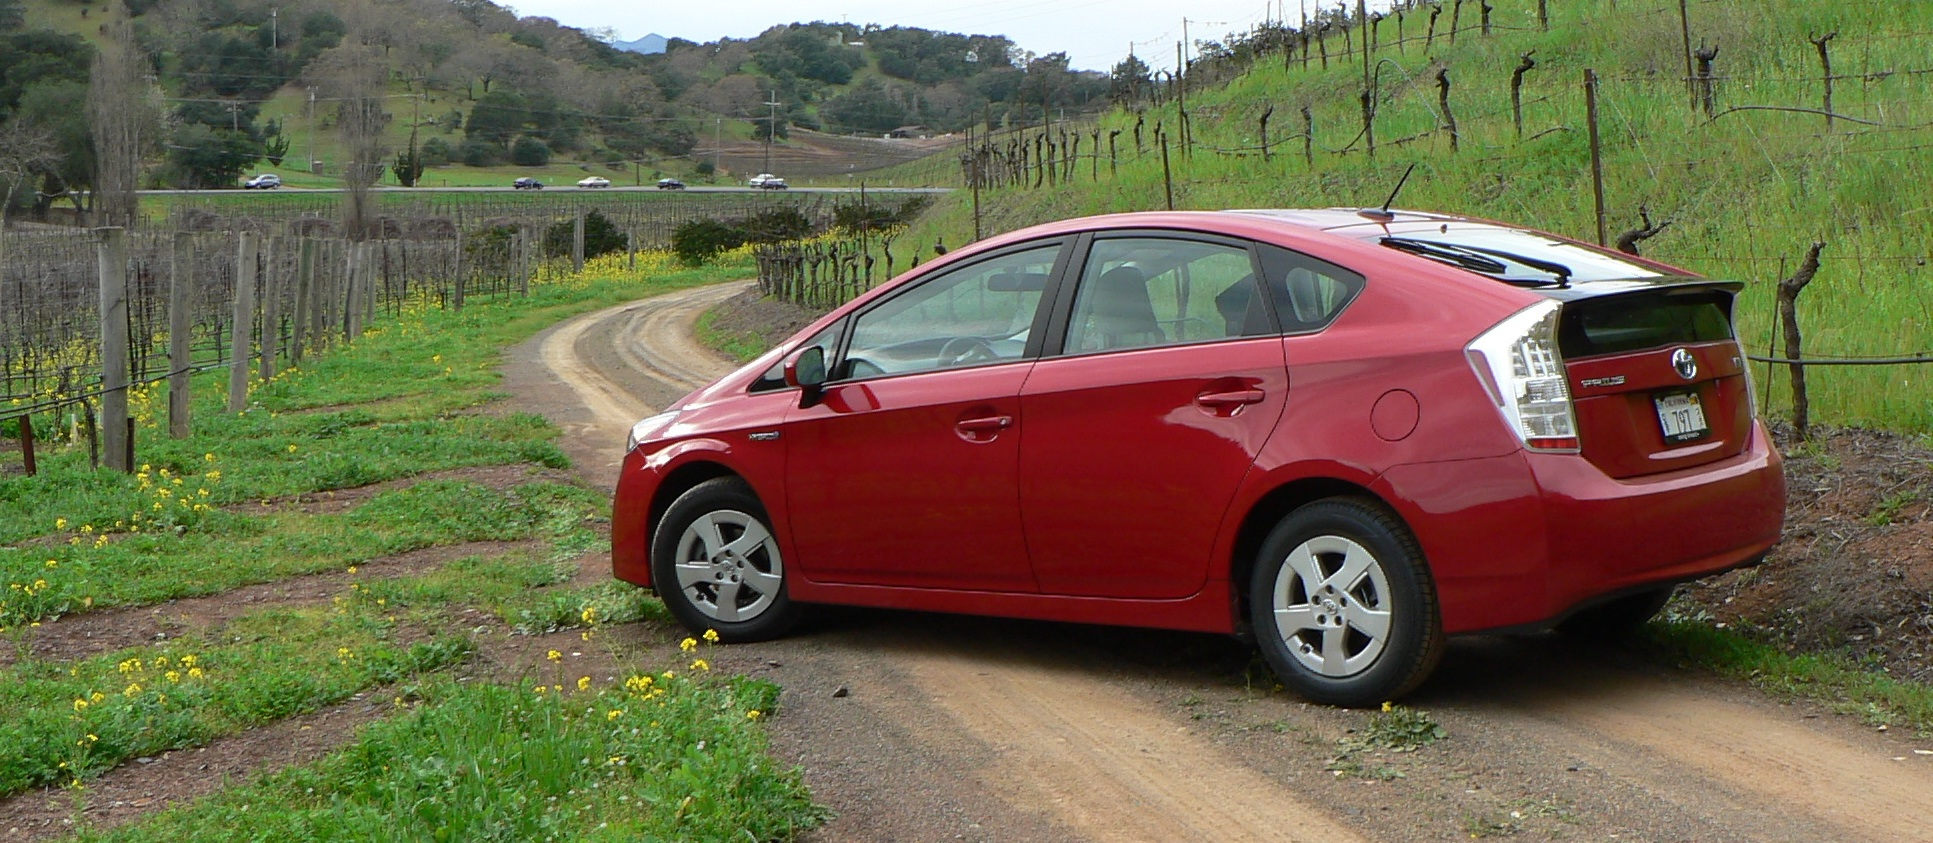 first drive 2010 toyota prius john leblanc 39 s straight six. Black Bedroom Furniture Sets. Home Design Ideas